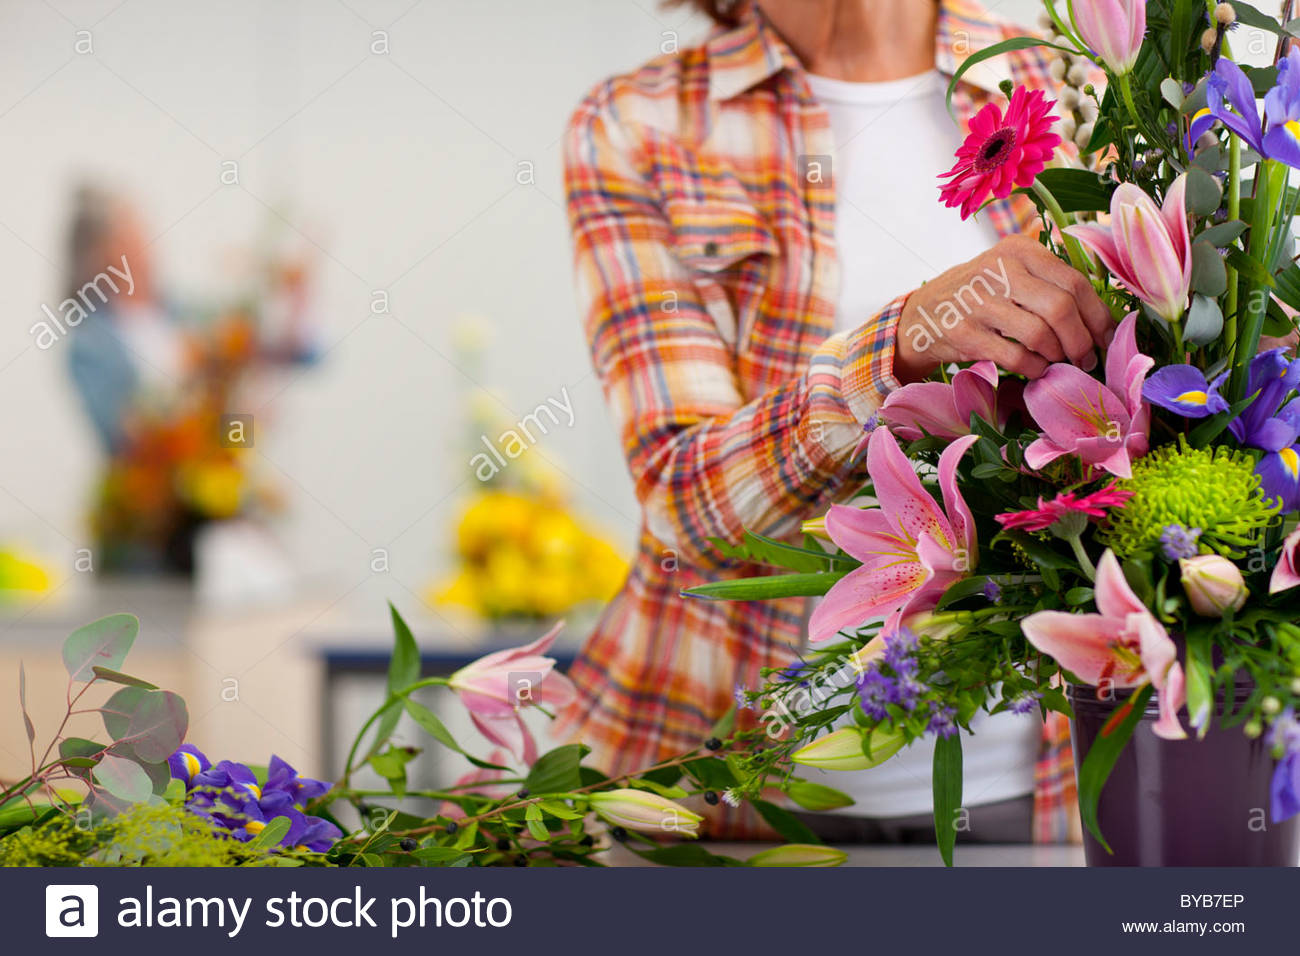 Woman putting flowers into floral arrangement in classroom - Stock Image